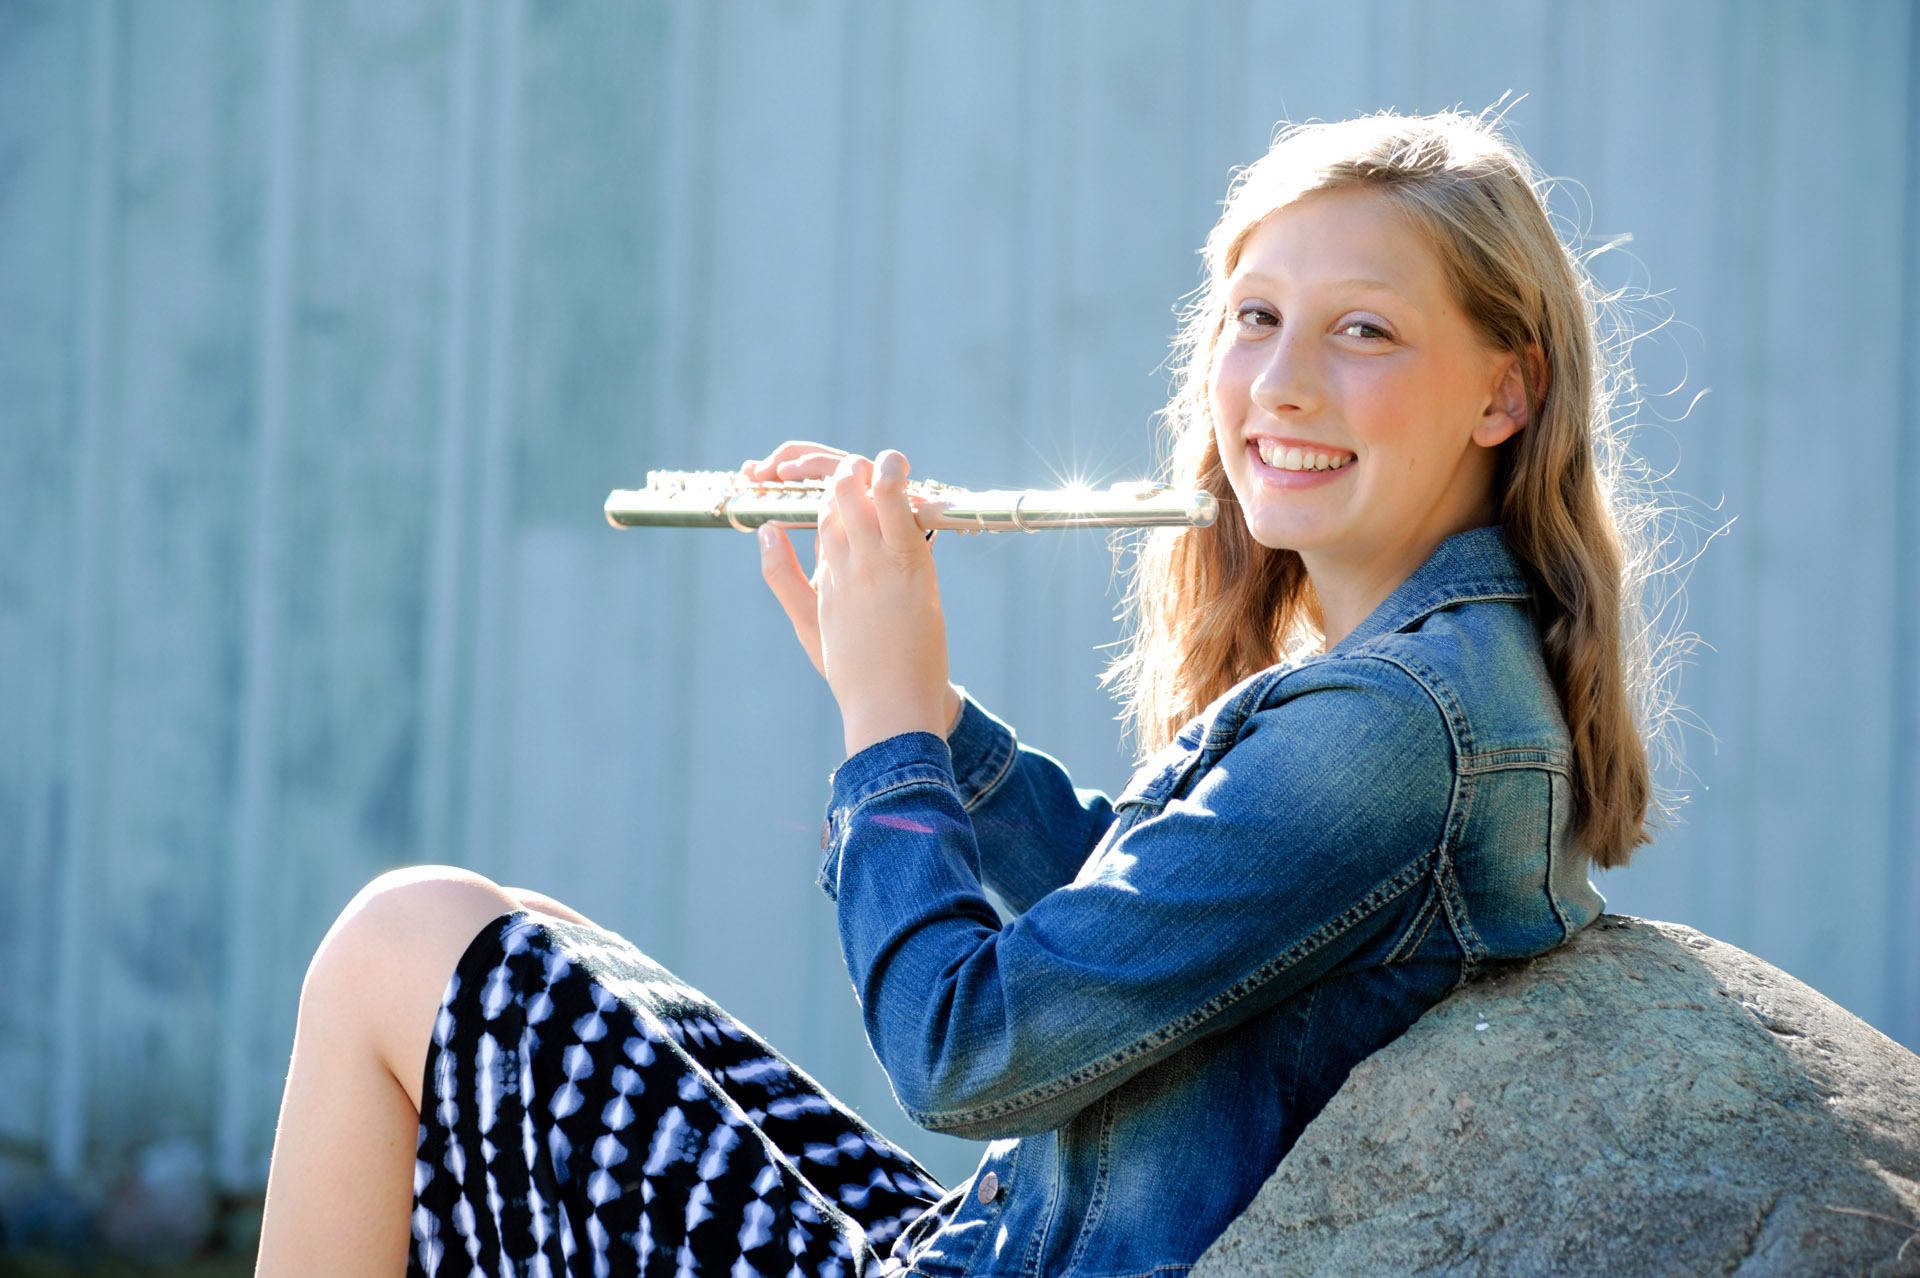 Troy, Michigan band member has her senior  photo of a high school senior posing with her flute for her senior pictures in Troy, Michigan.